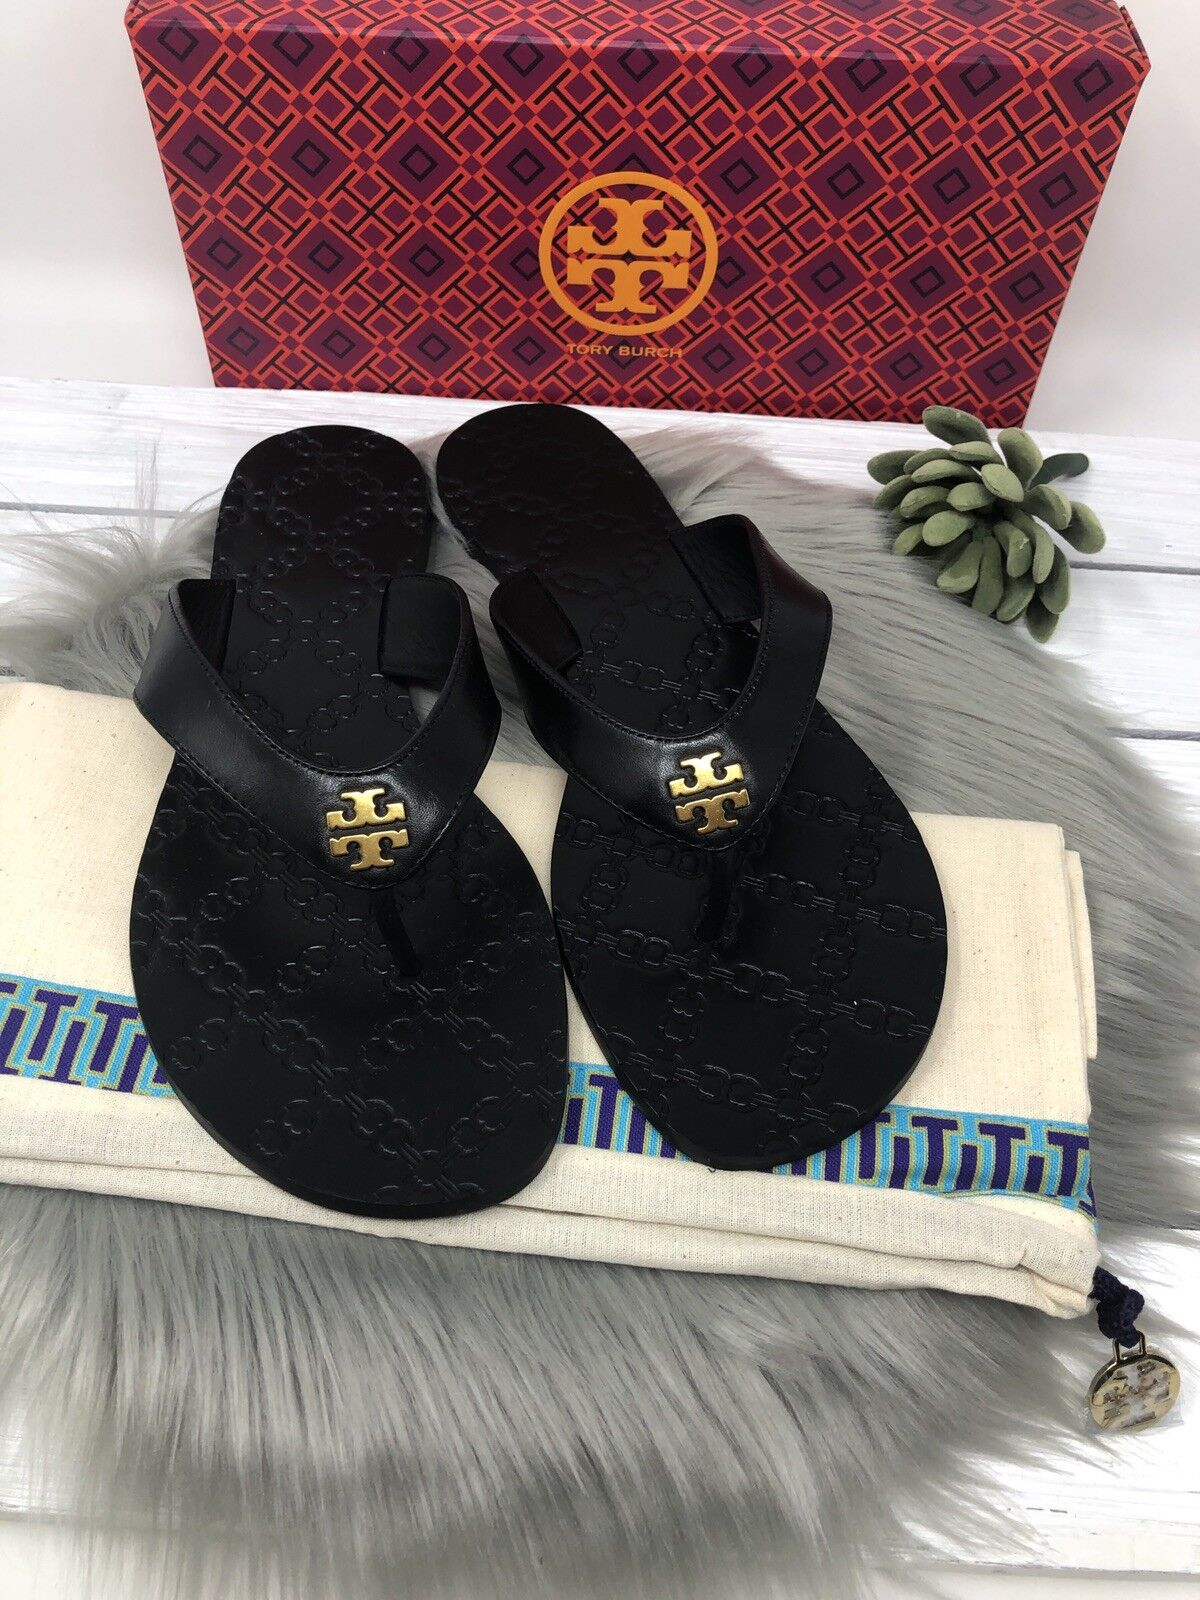 NIB Tory Burch Monroe Thong Sandals Flip Flops - Black - 8,9